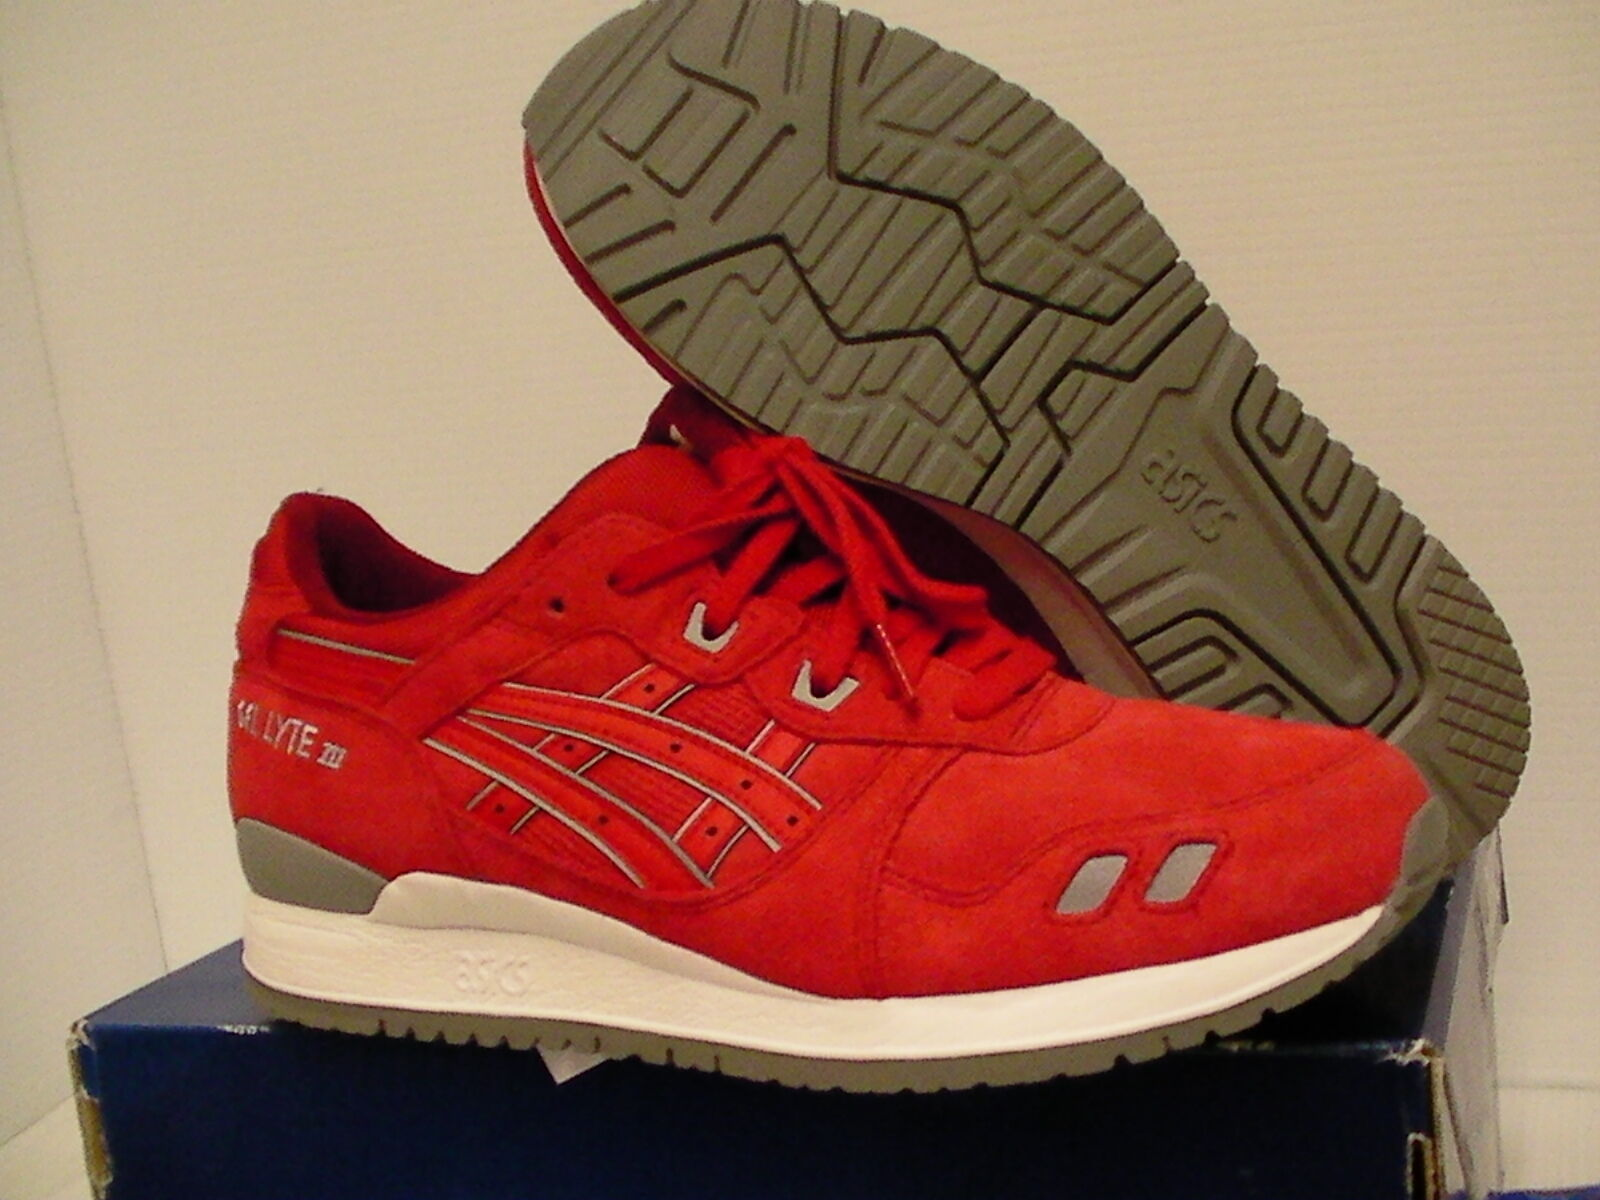 Asics running 9.5 shoes gel-lyte iii size 9.5 running us men red new with box 804c94